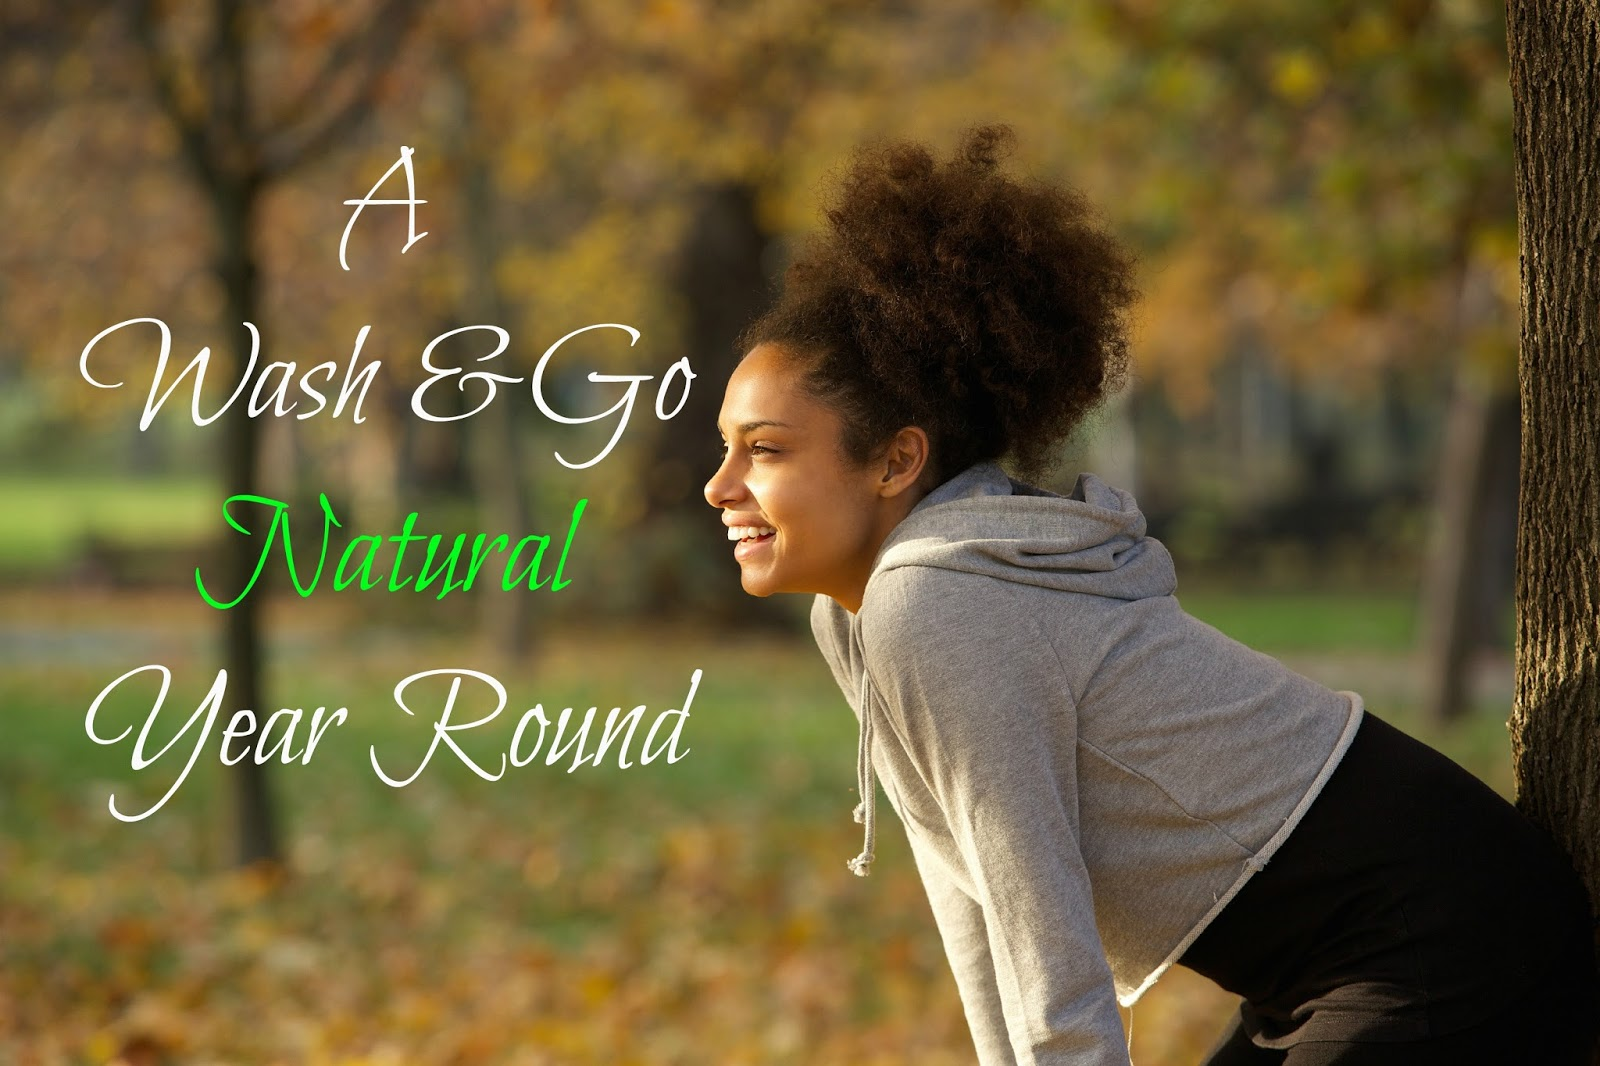 A Wash and Go Natural Year Round